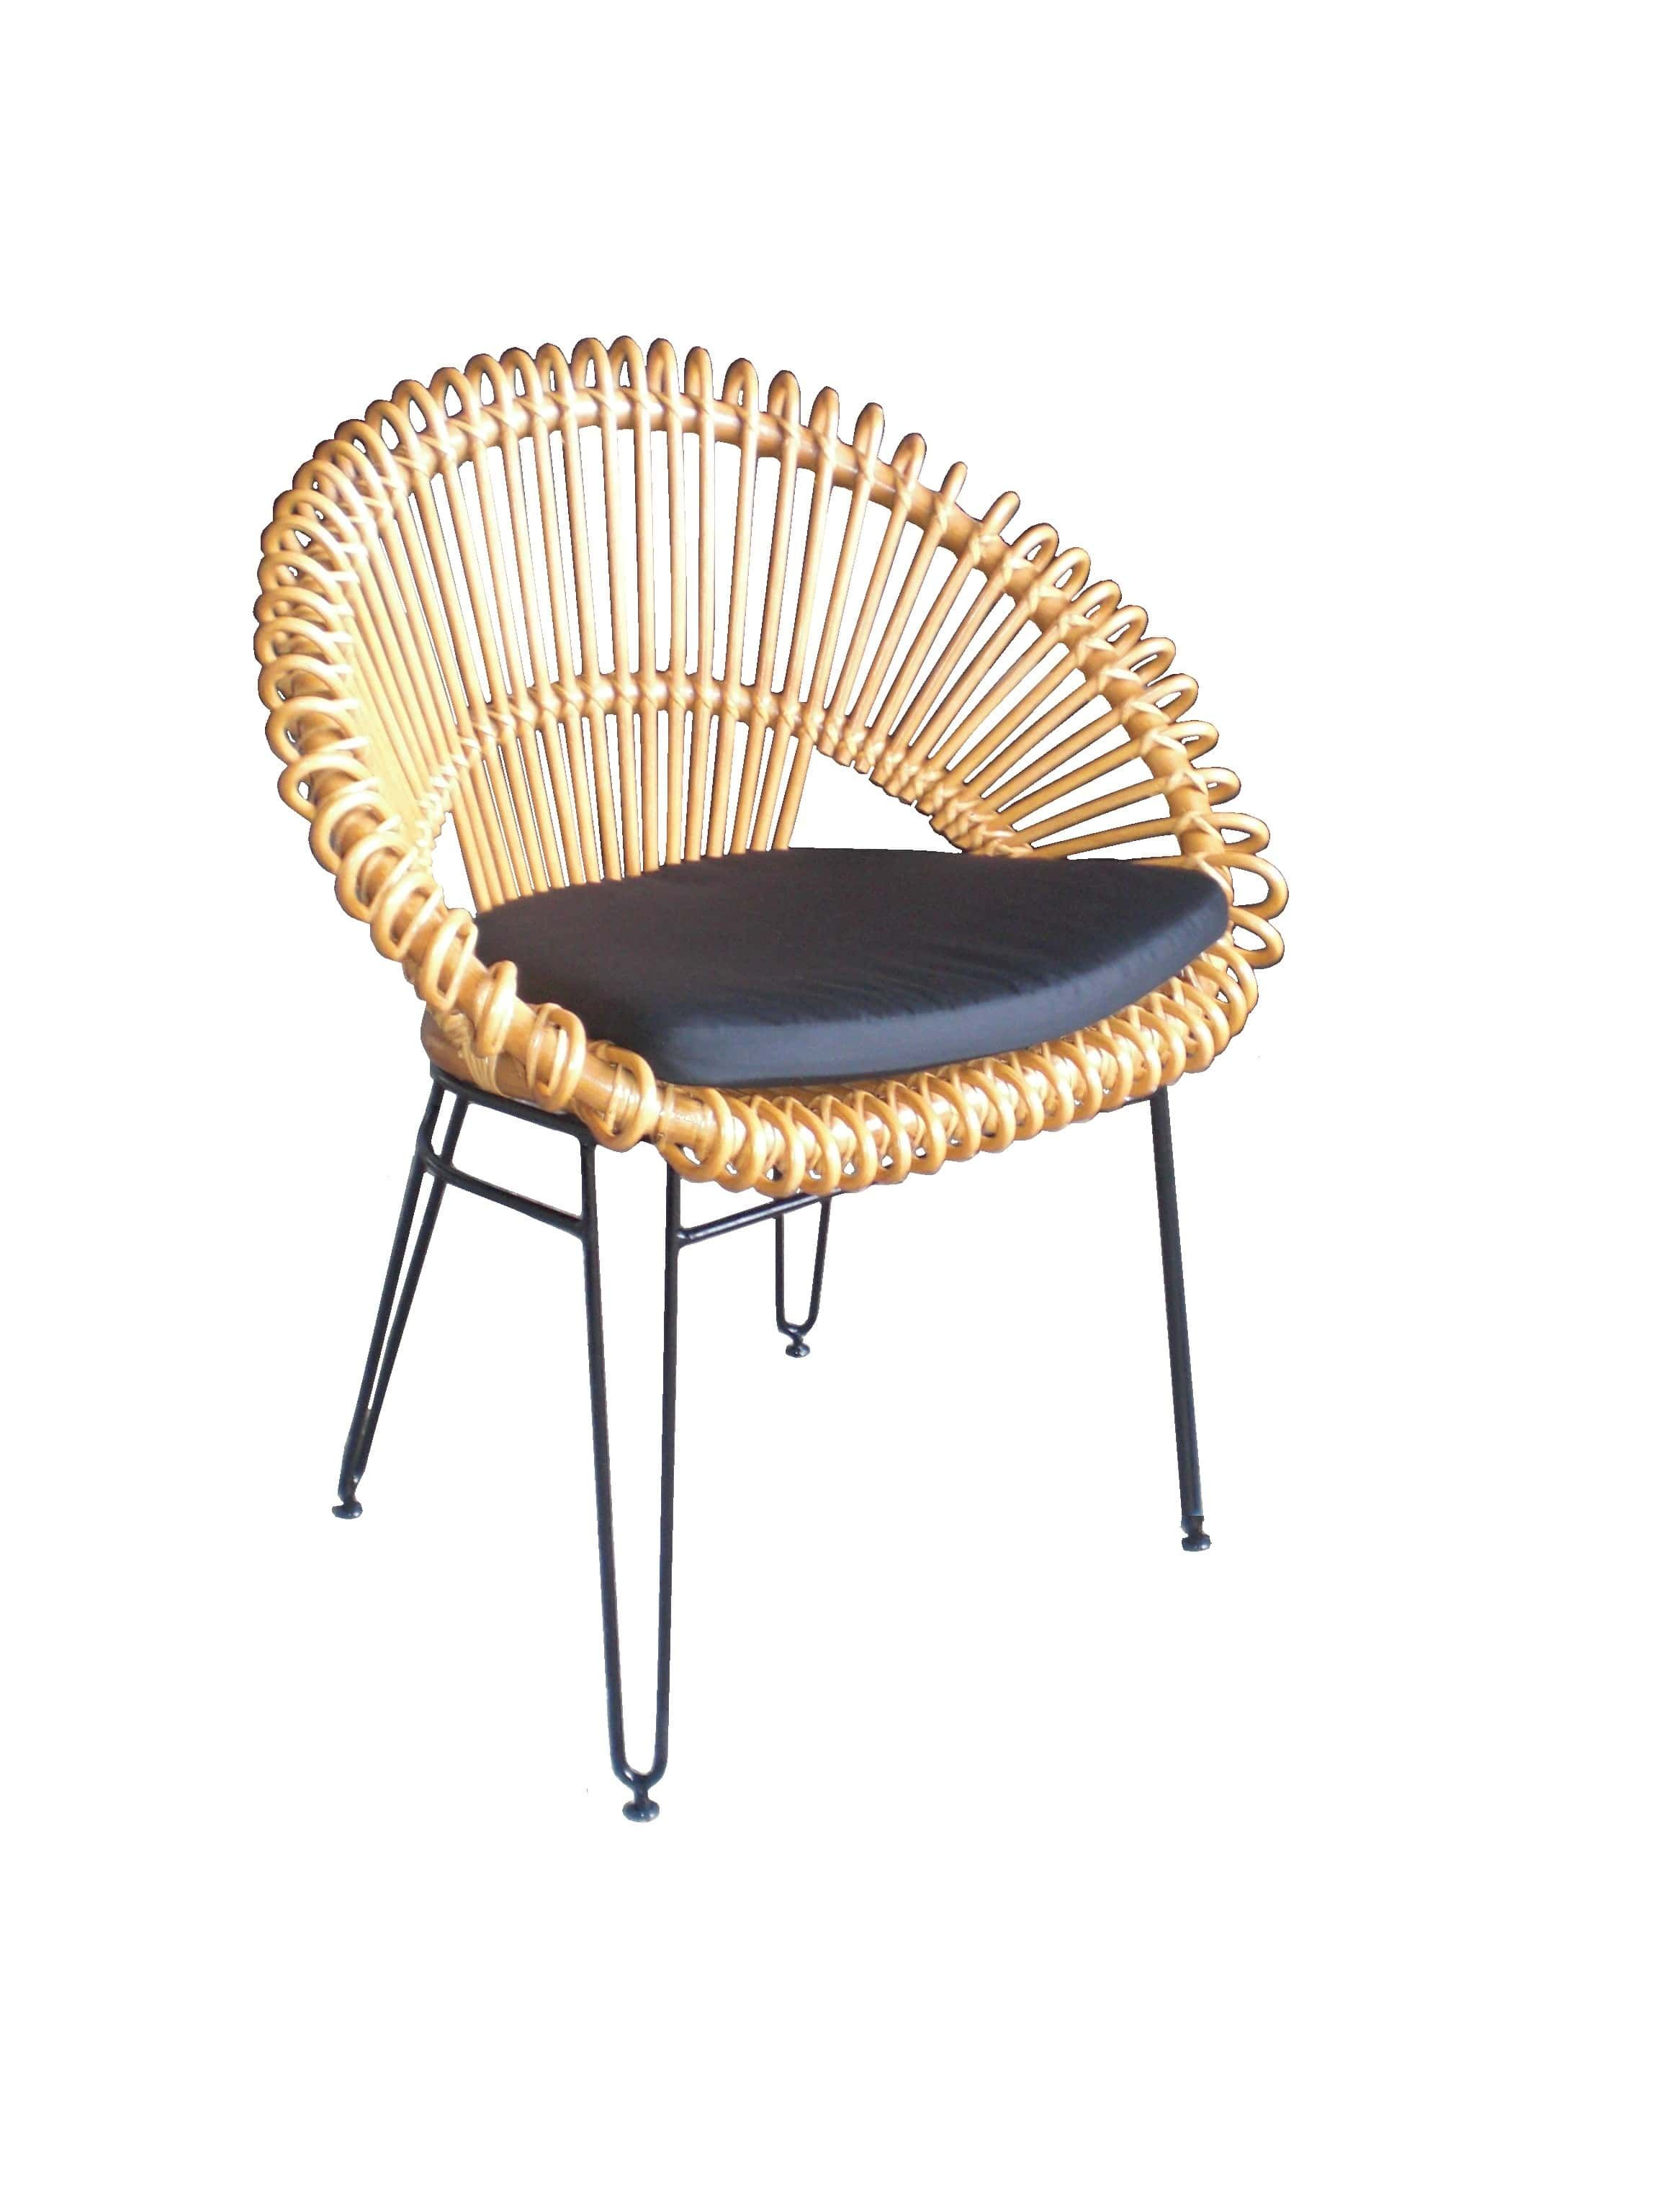 Awesome Wicker Circle Chair,bamboo Circle Chair,circle Wicker Chair,round Rattan  Chair With